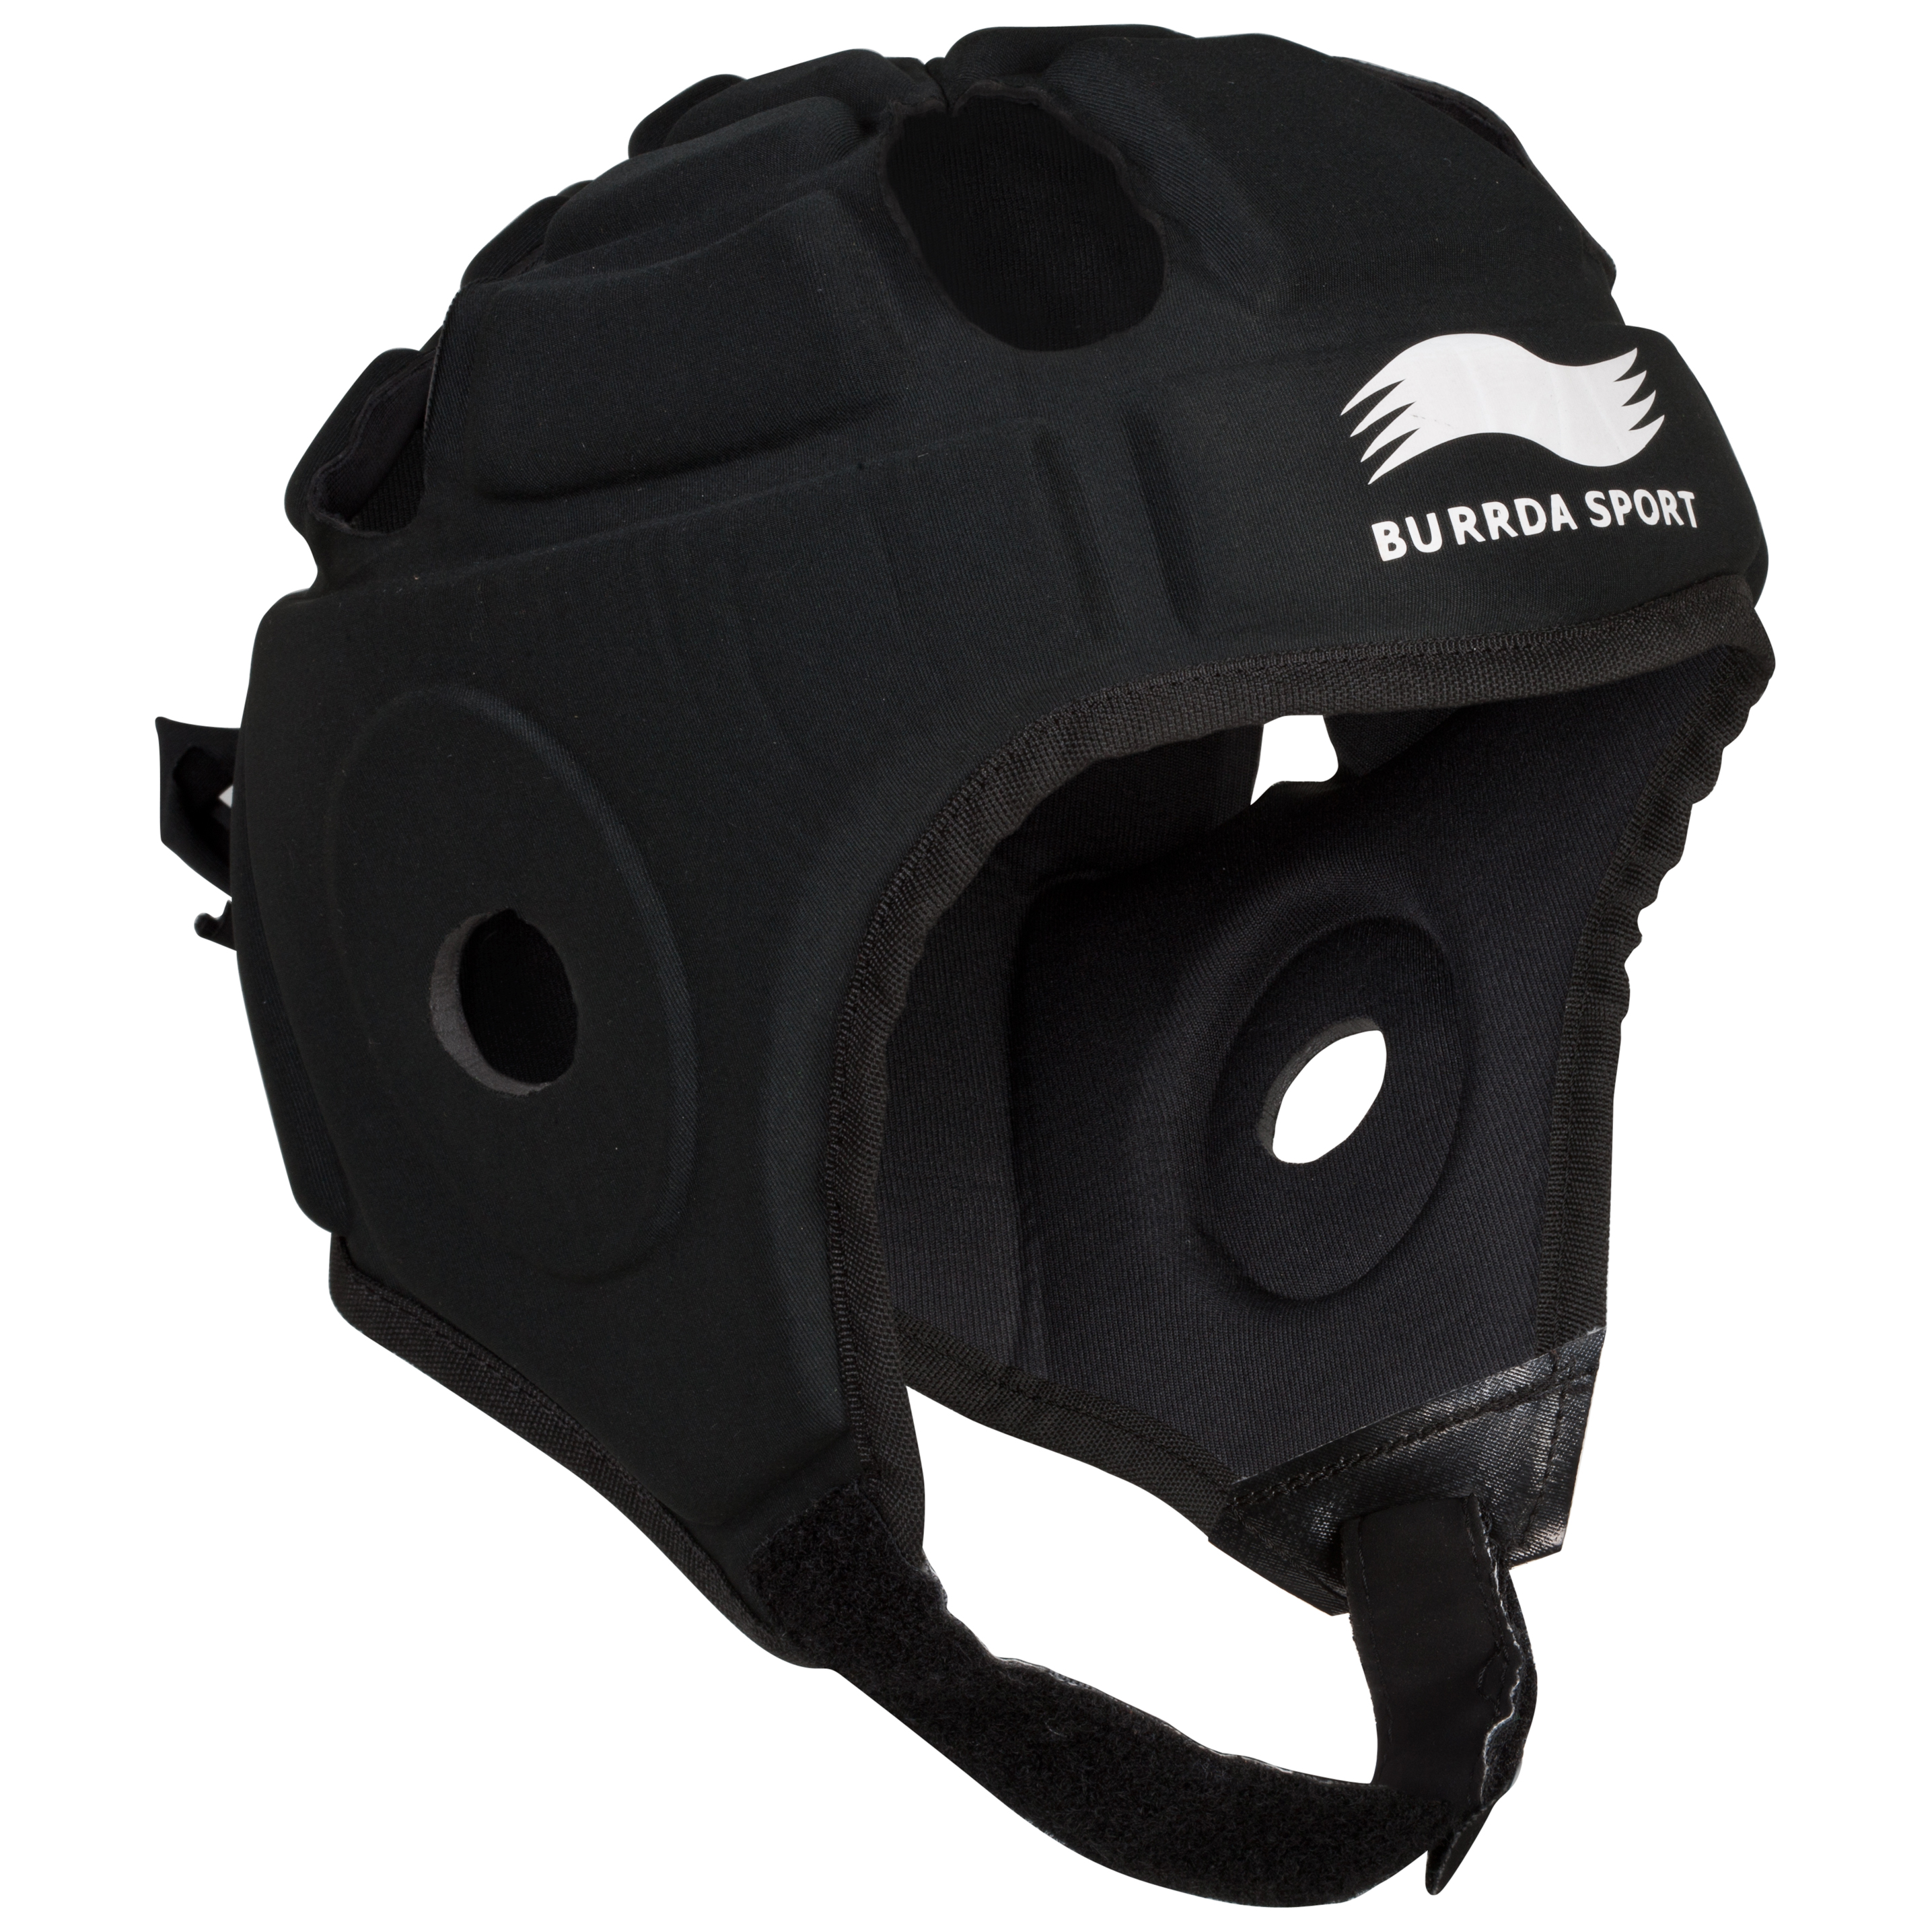 Burrda Sport Rugby Tech Headguard - Black